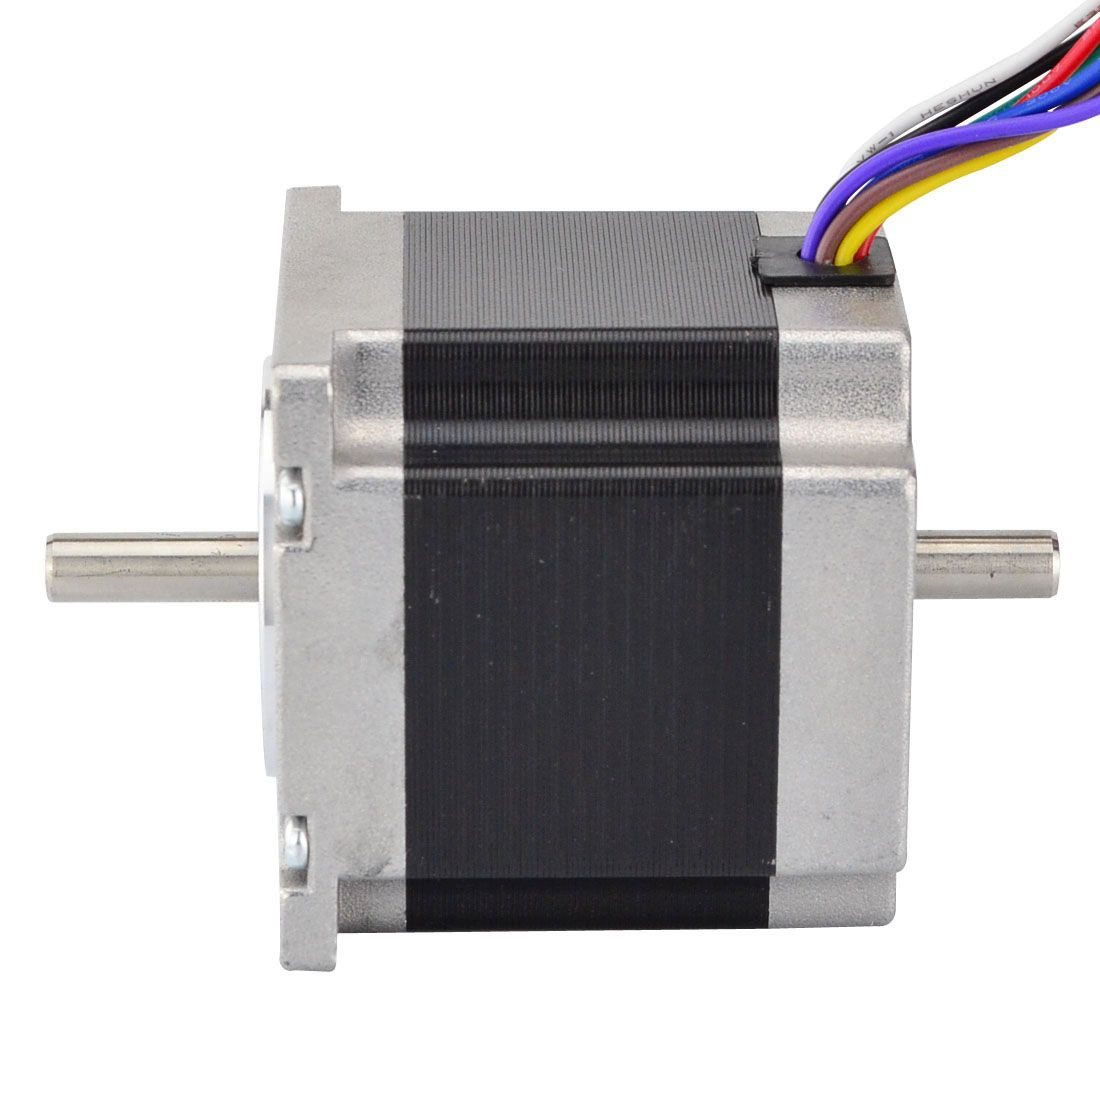 This Nema 23 Stepper Motor With Step Angle 1 8deg And Size 57x57x56mm It Has 8 Wires Which Have Three Connection Options Unipol Stepper Motor Steppers Motor